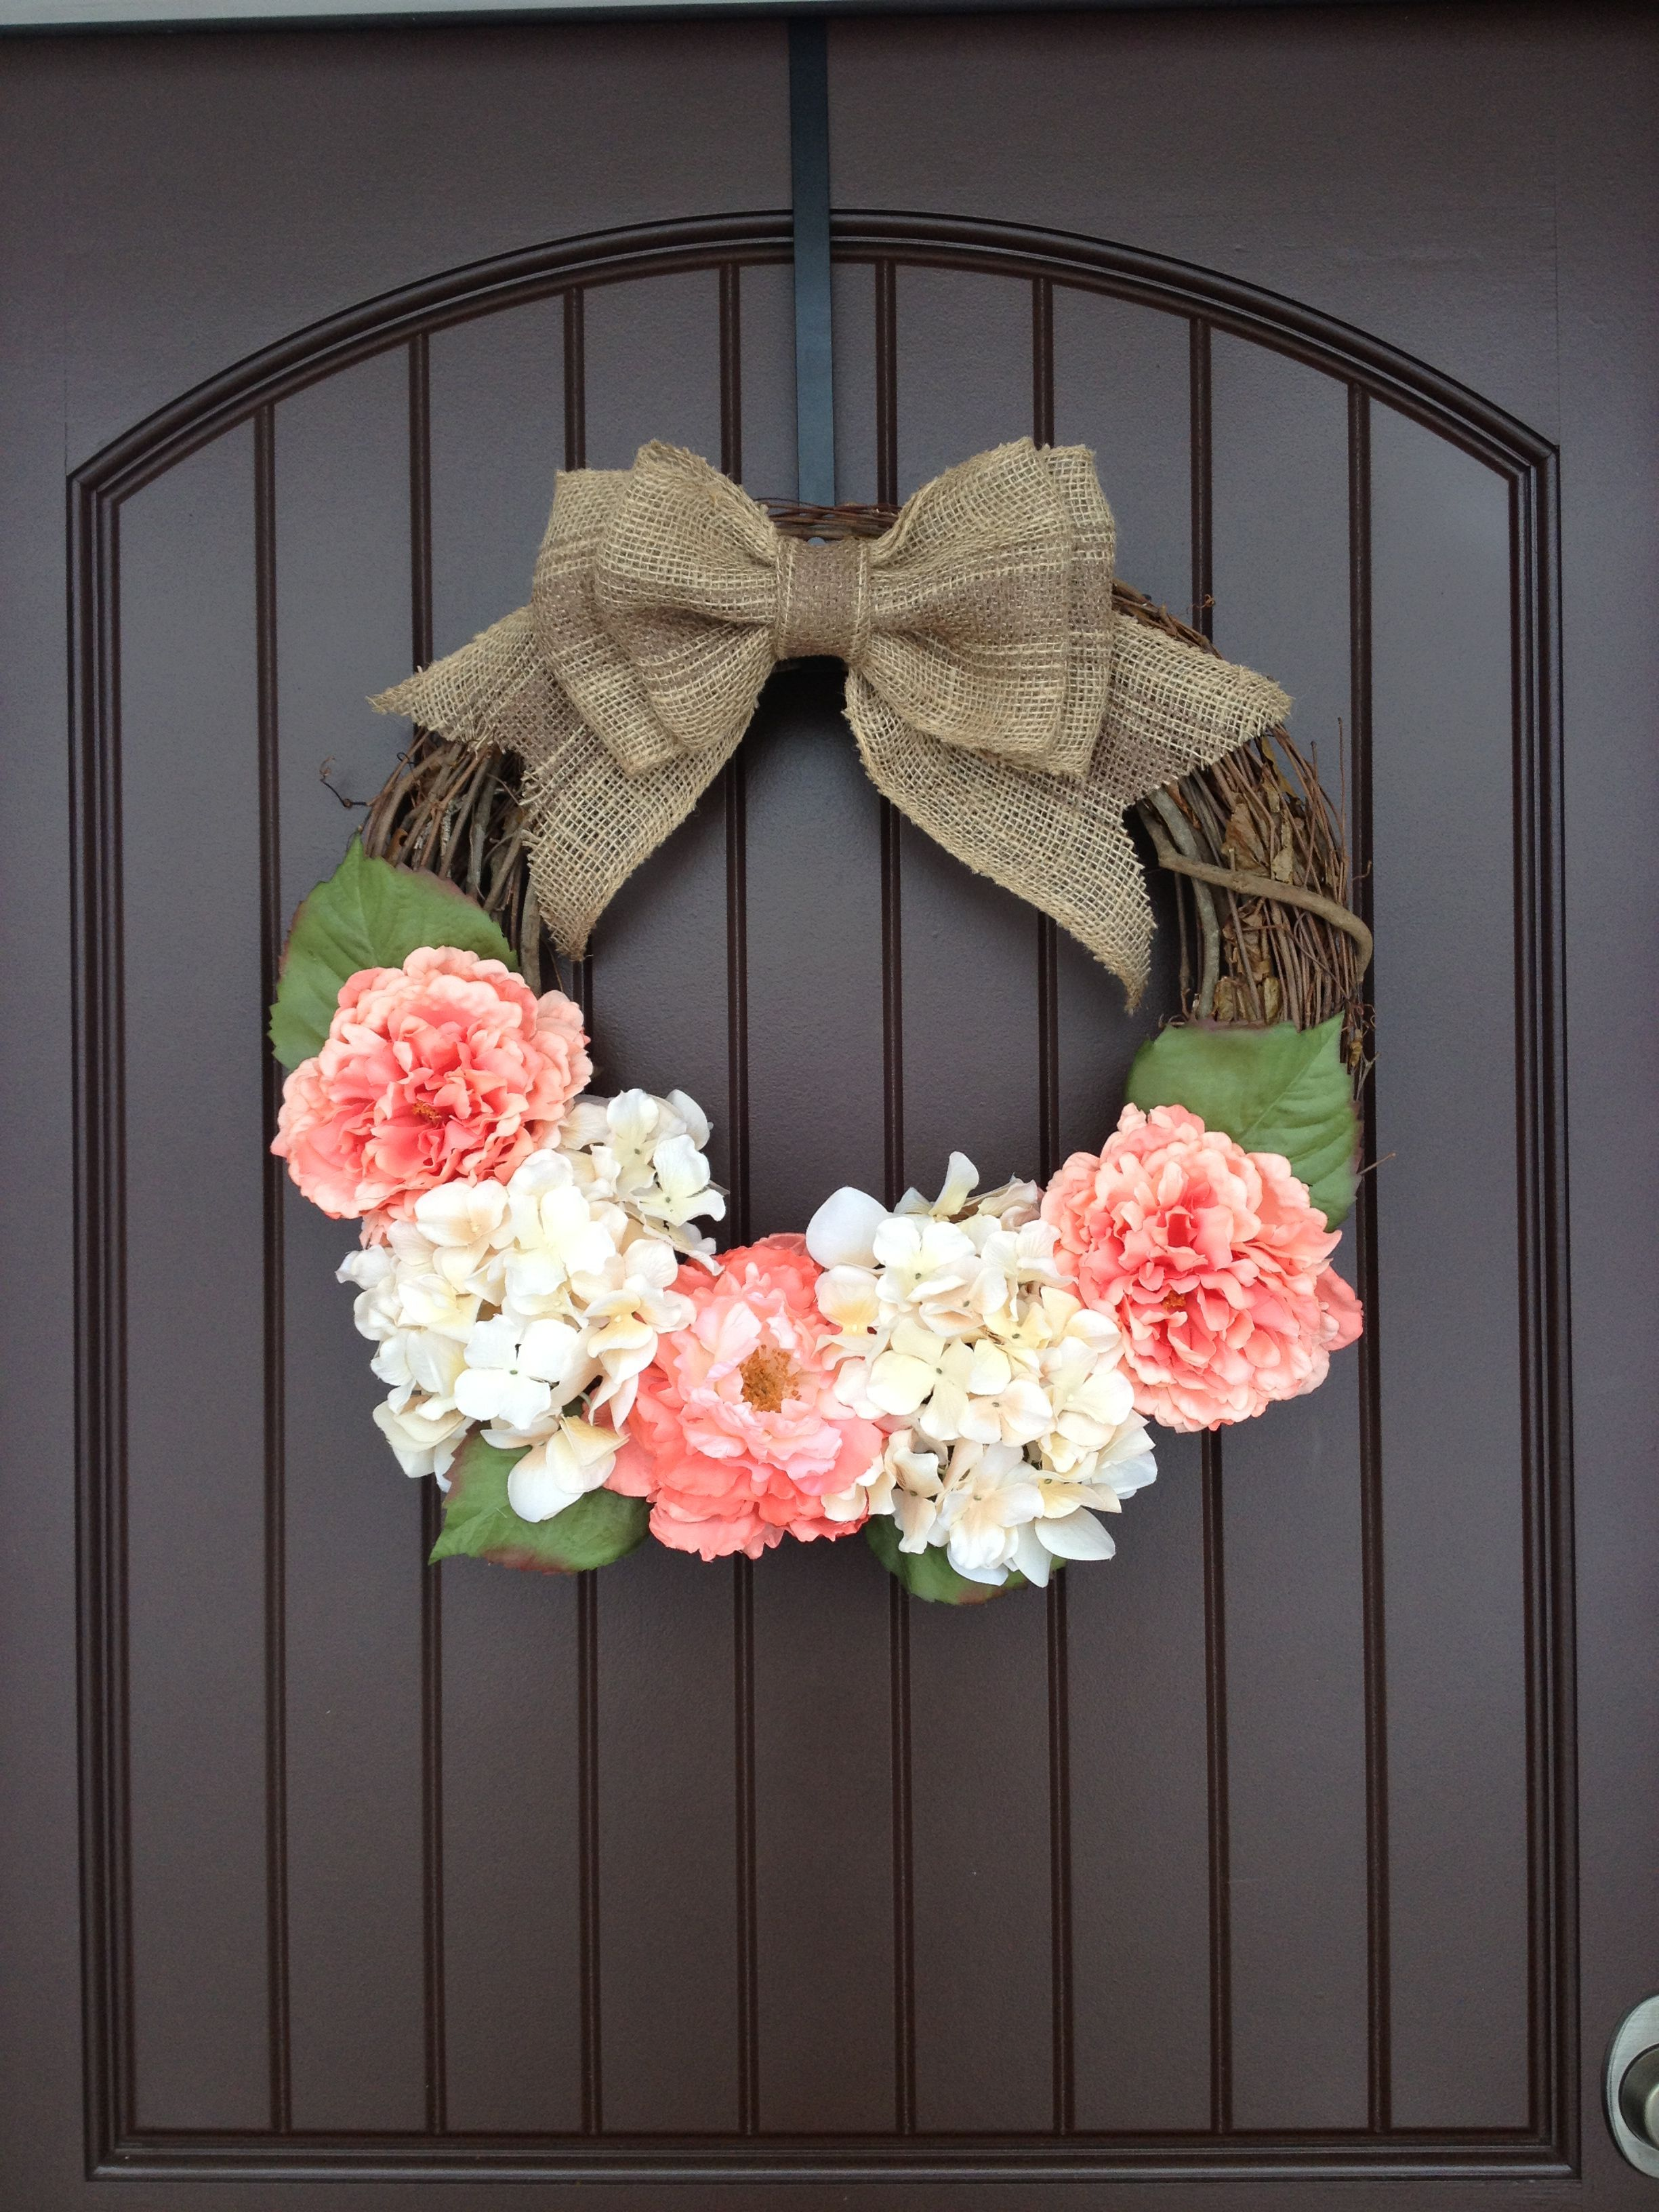 Spring door wreath. DIY Door Wreath. So easy to make! Only